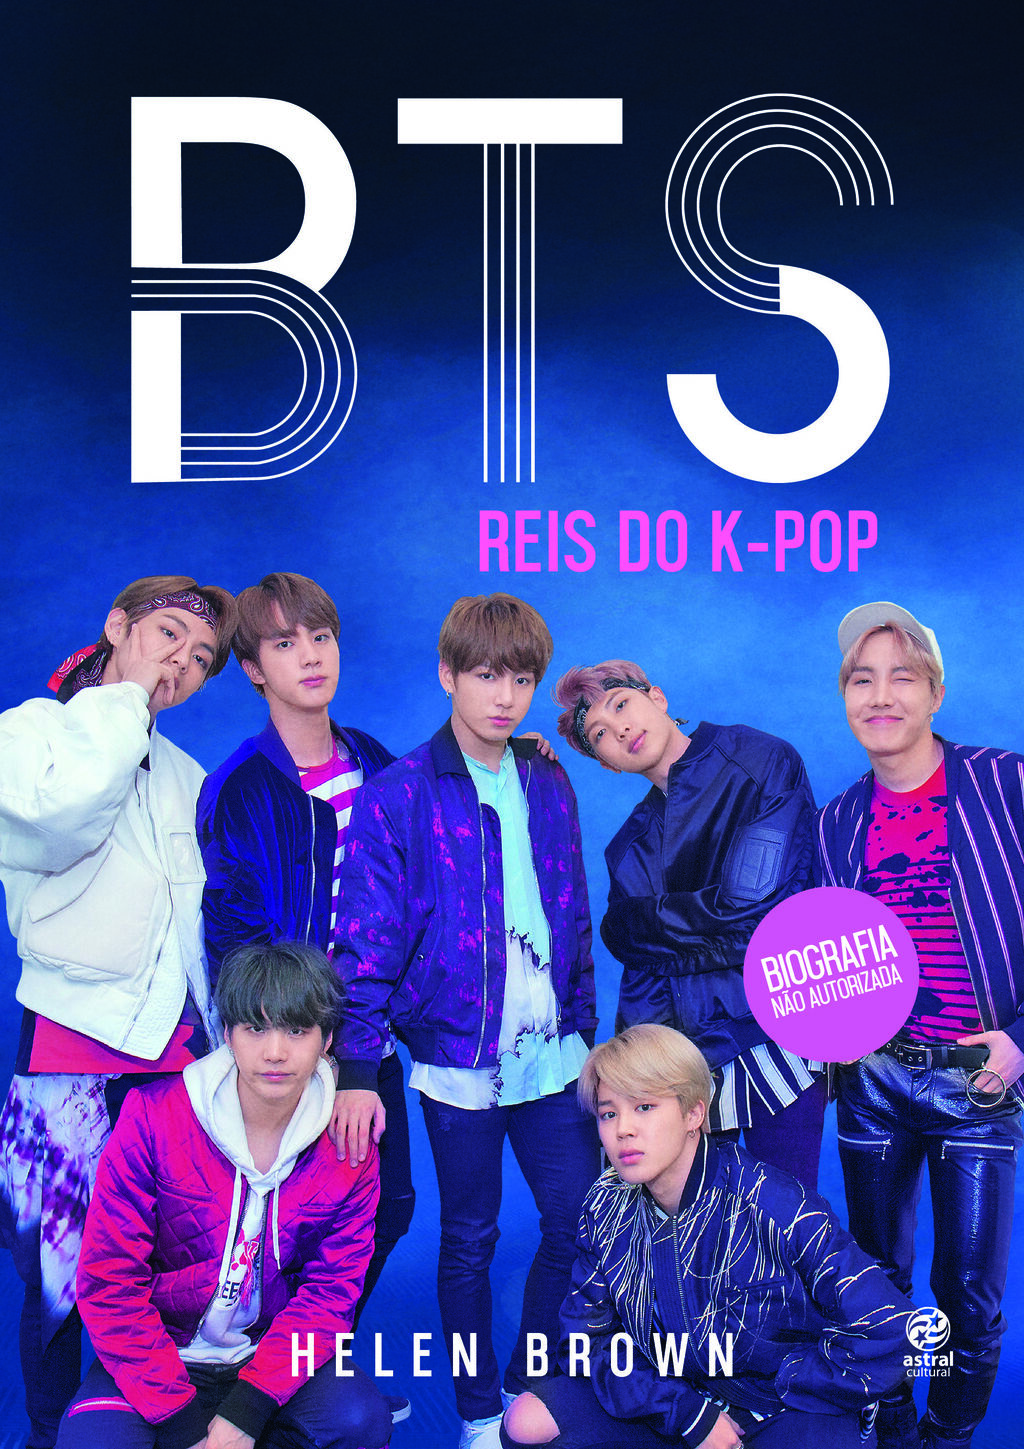 BTS - Reis do K-Pop